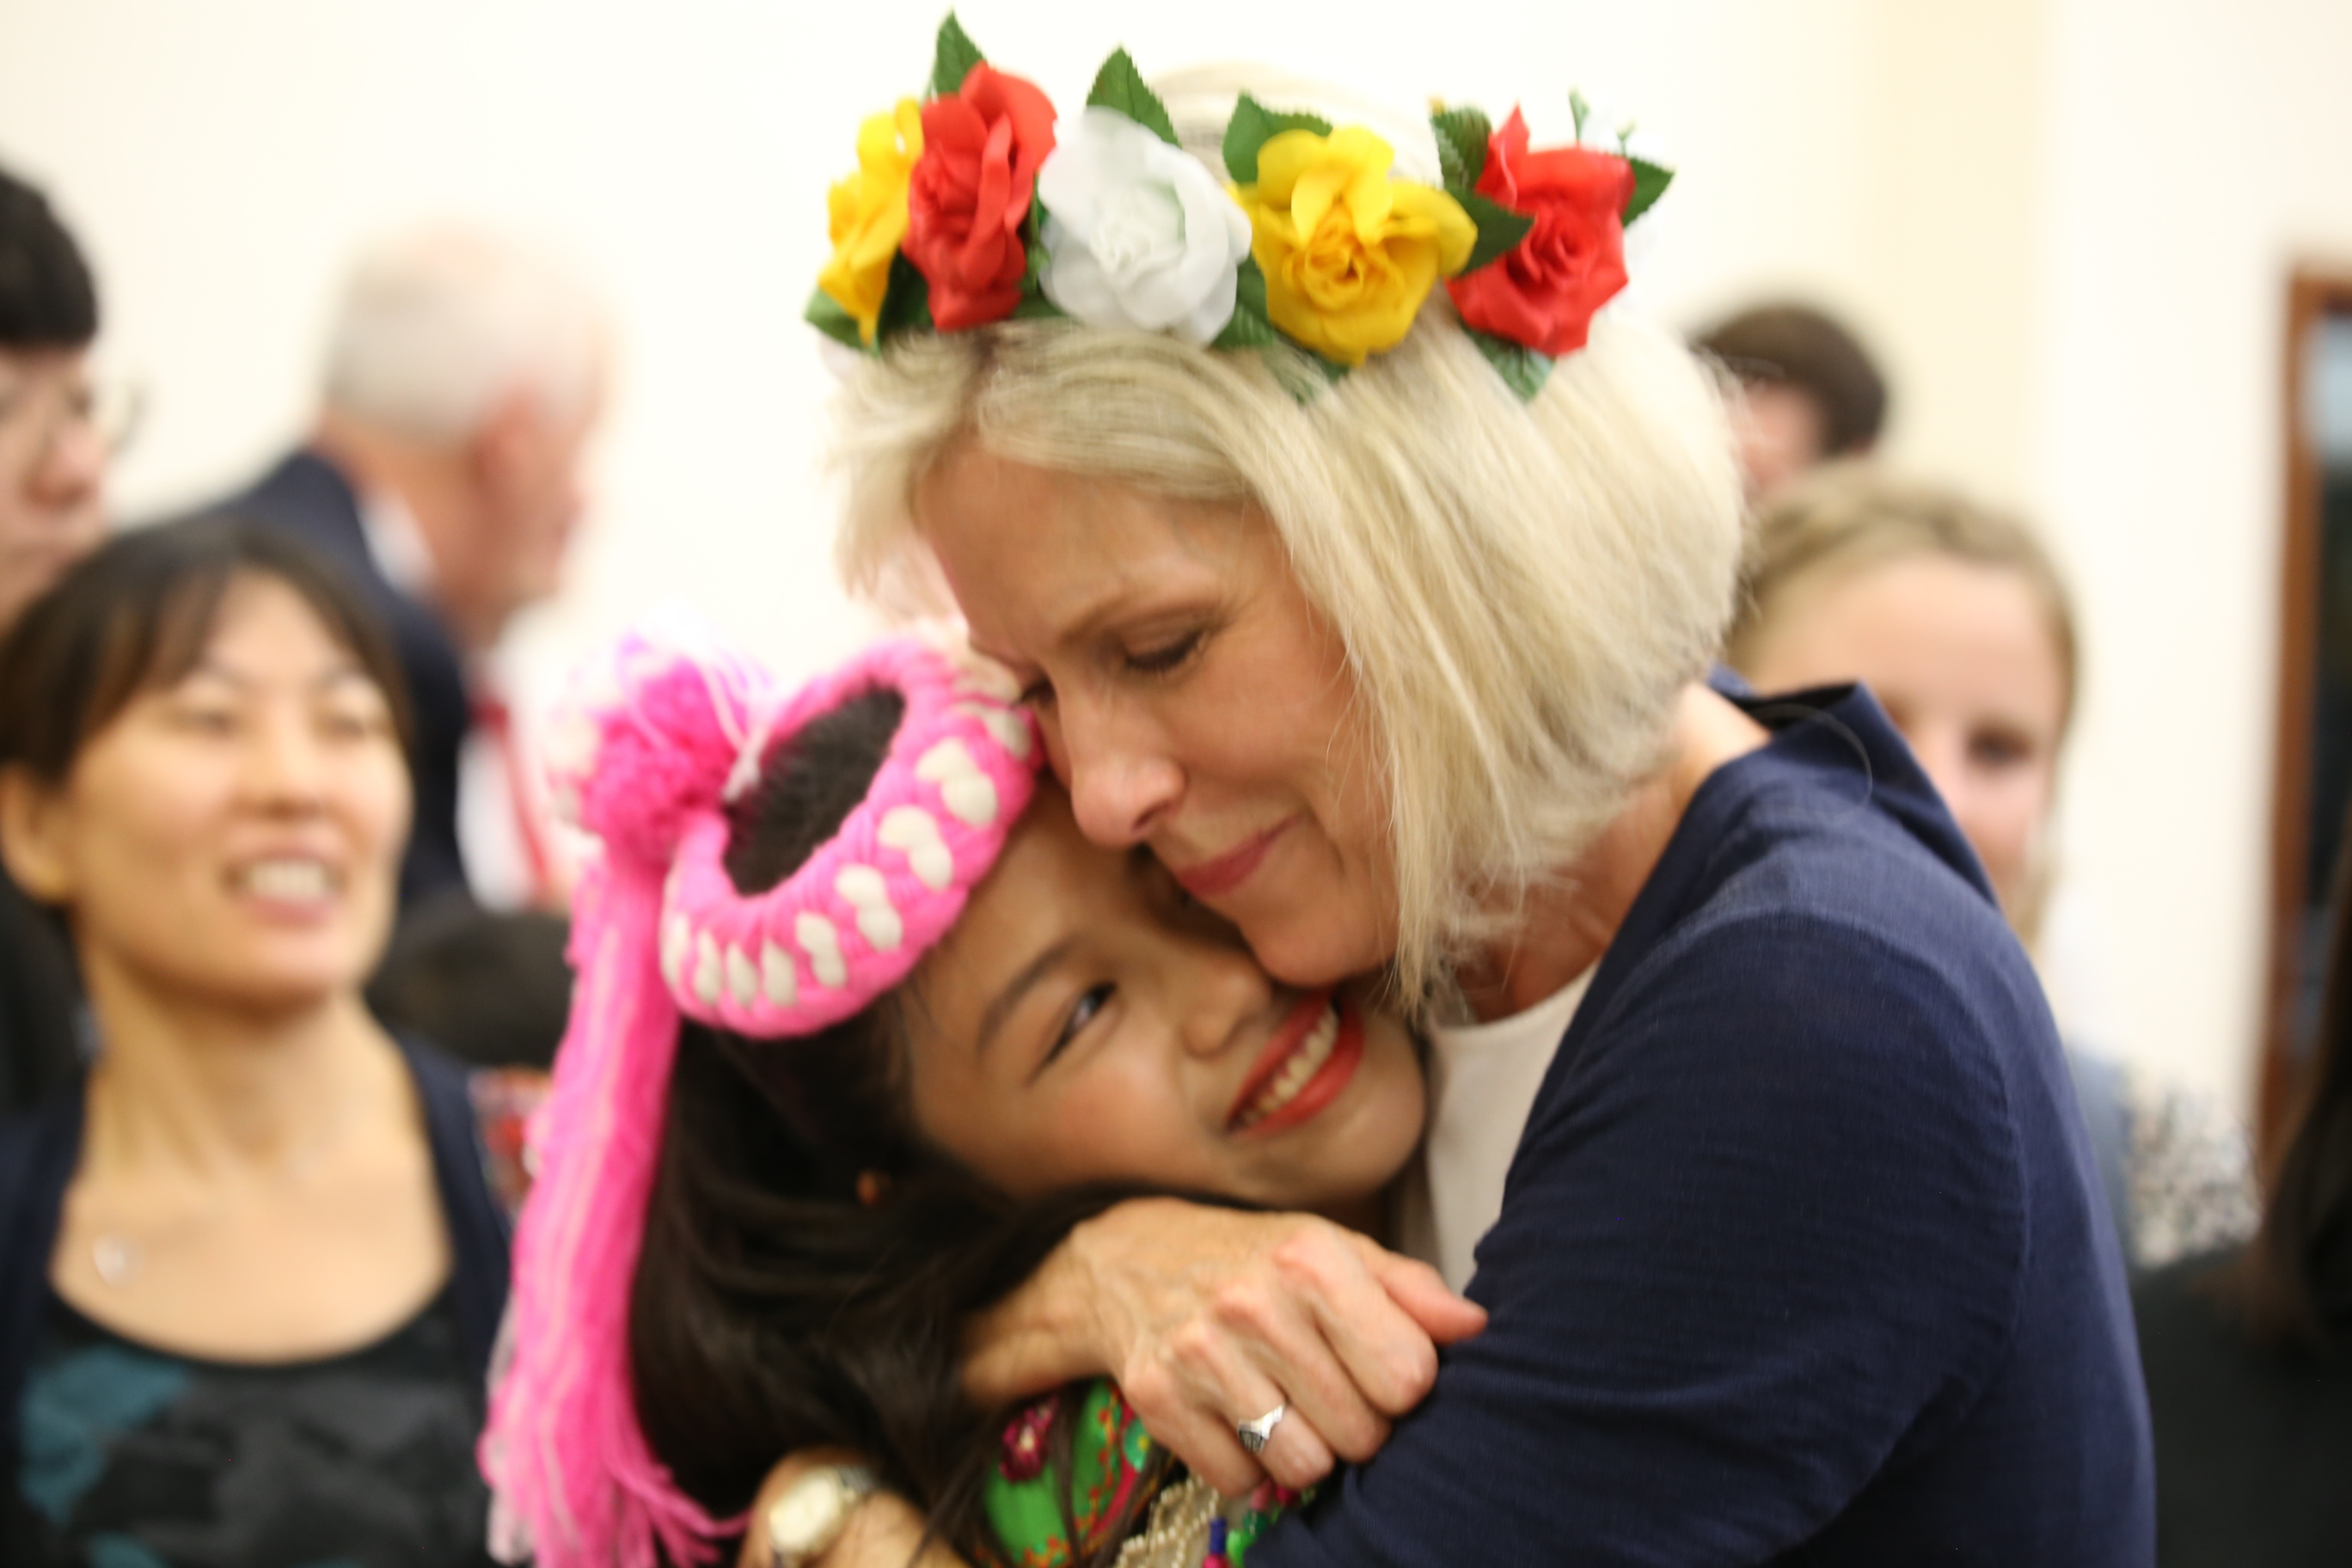 Sister Joy D. Jones, Primary general president, hugs a youth member following a devotional in Taitung, Taiwan, where she danced with members during a visit to the Asia Area from Aug. 17 to 24, 2019.